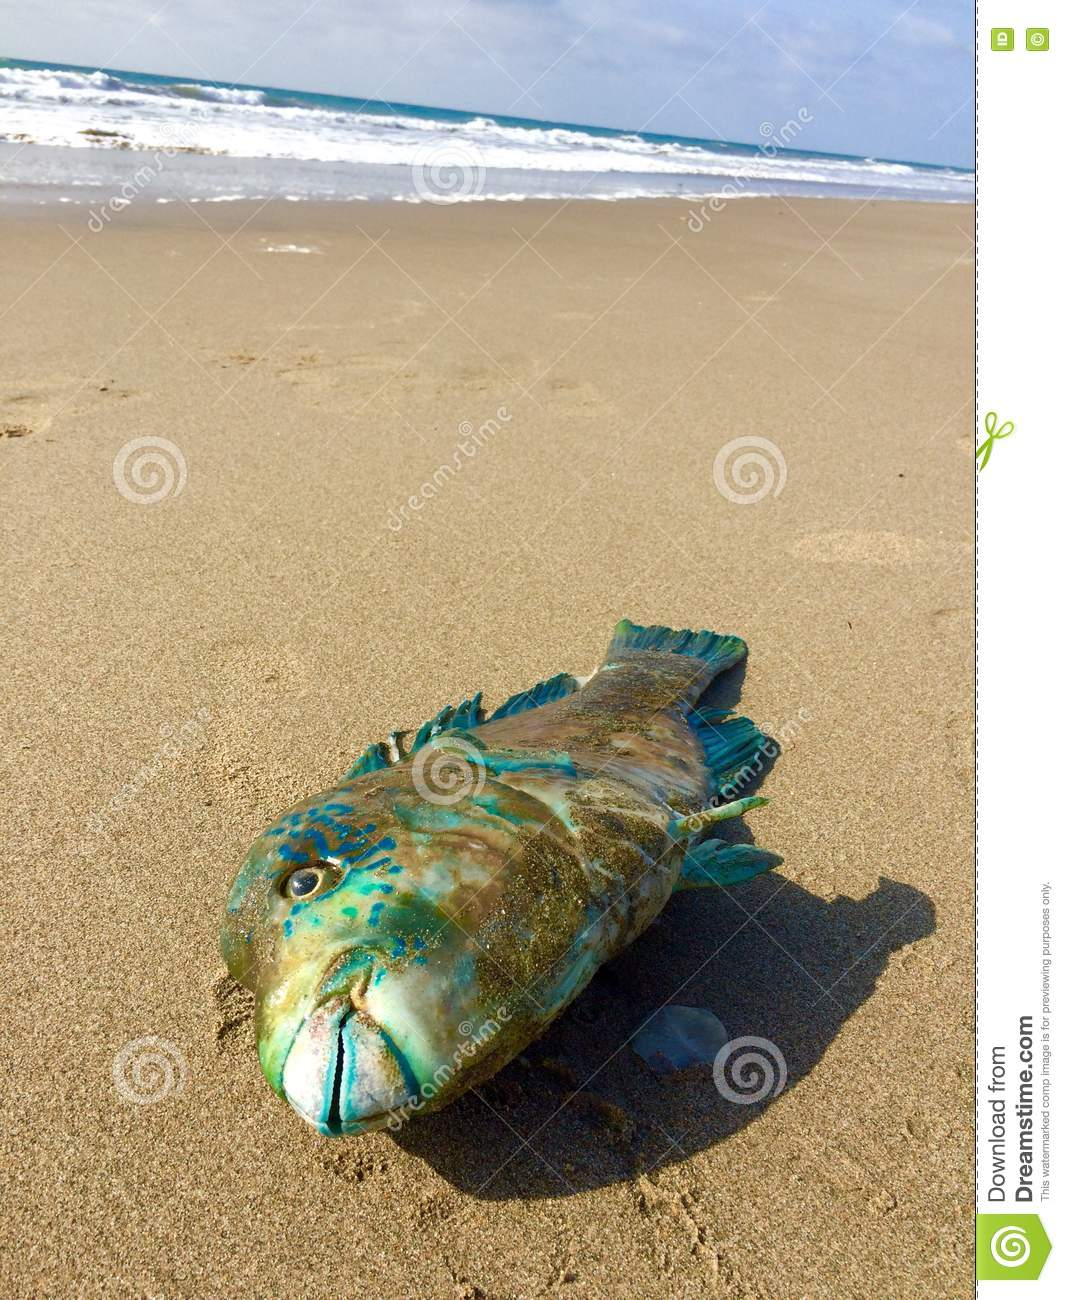 Dead fish stock image image of pacific fish sand ocean 79785841 fish on the sand beach of the pacific ocean publicscrutiny Images